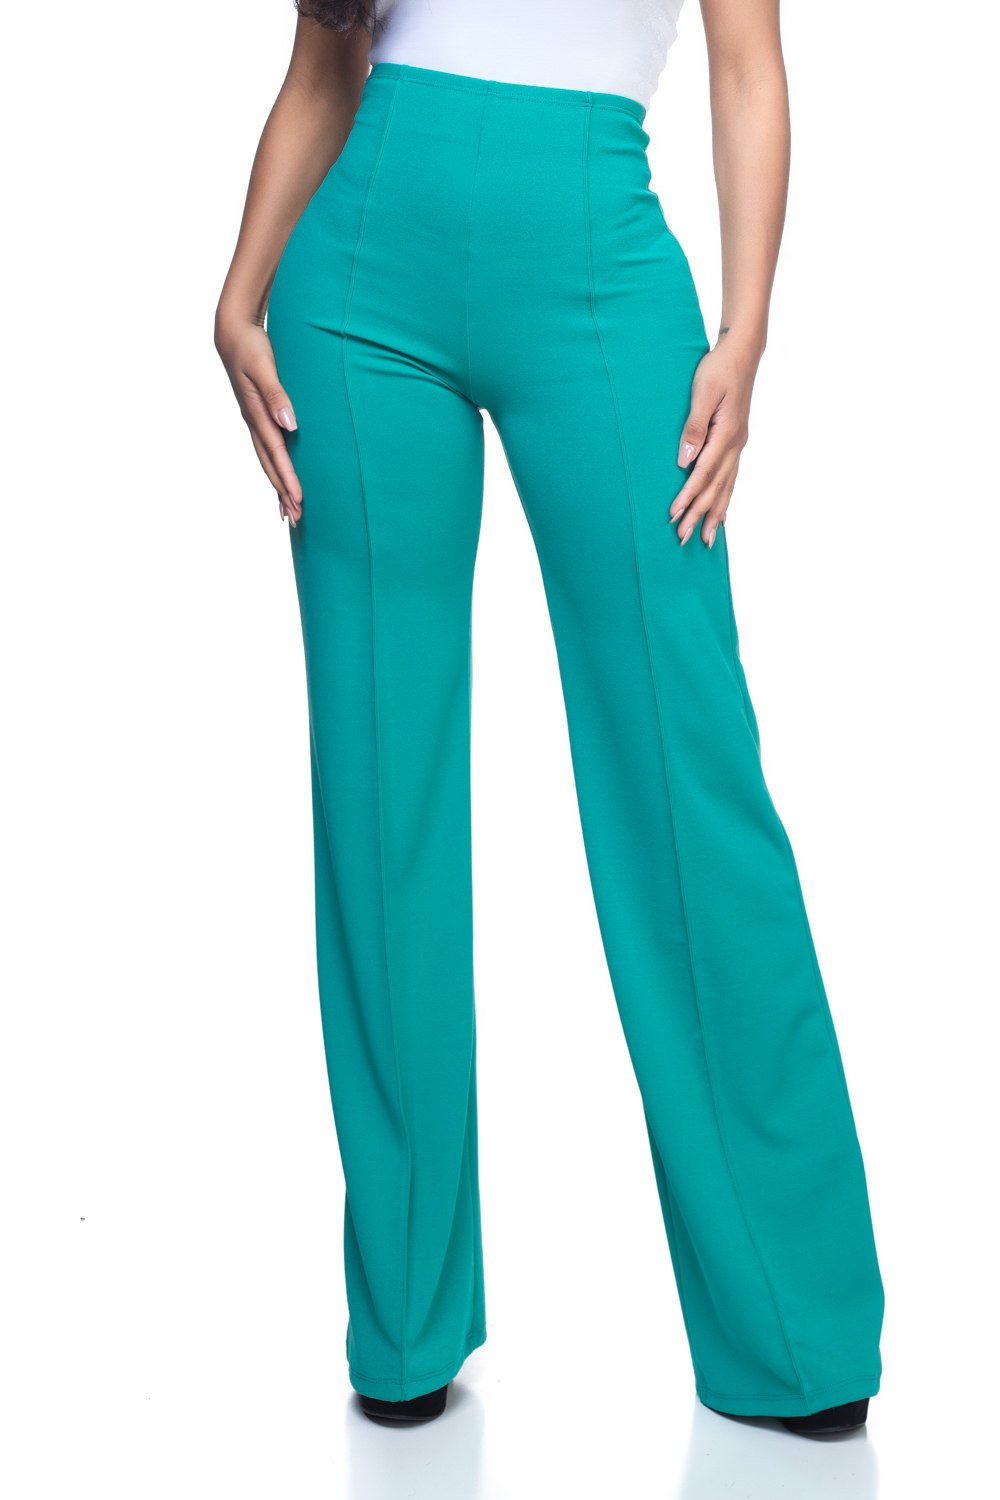 Women's Junior Plus J2 Love High Waist Bell Bottom Flare Pants, 1X, Emerald